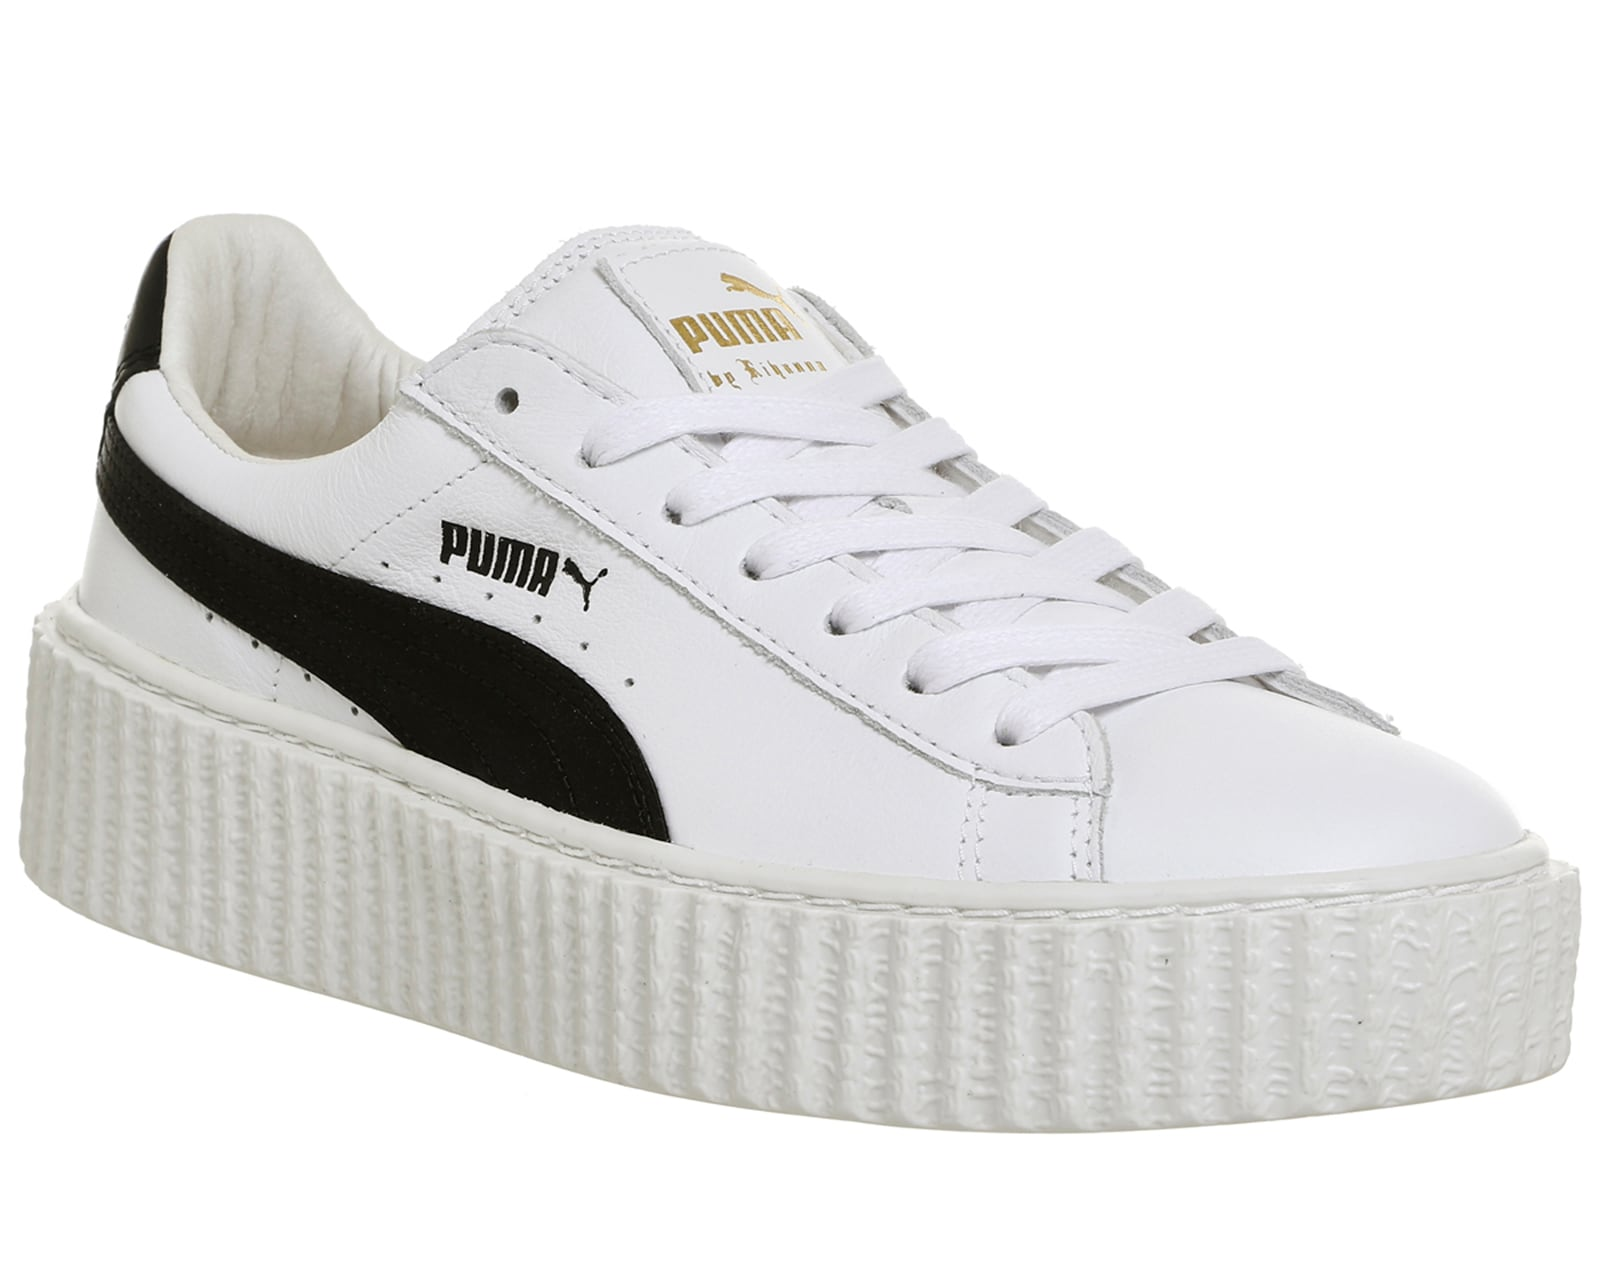 womens puma basket creepers white black leather fenty trainers shoes ebay. Black Bedroom Furniture Sets. Home Design Ideas